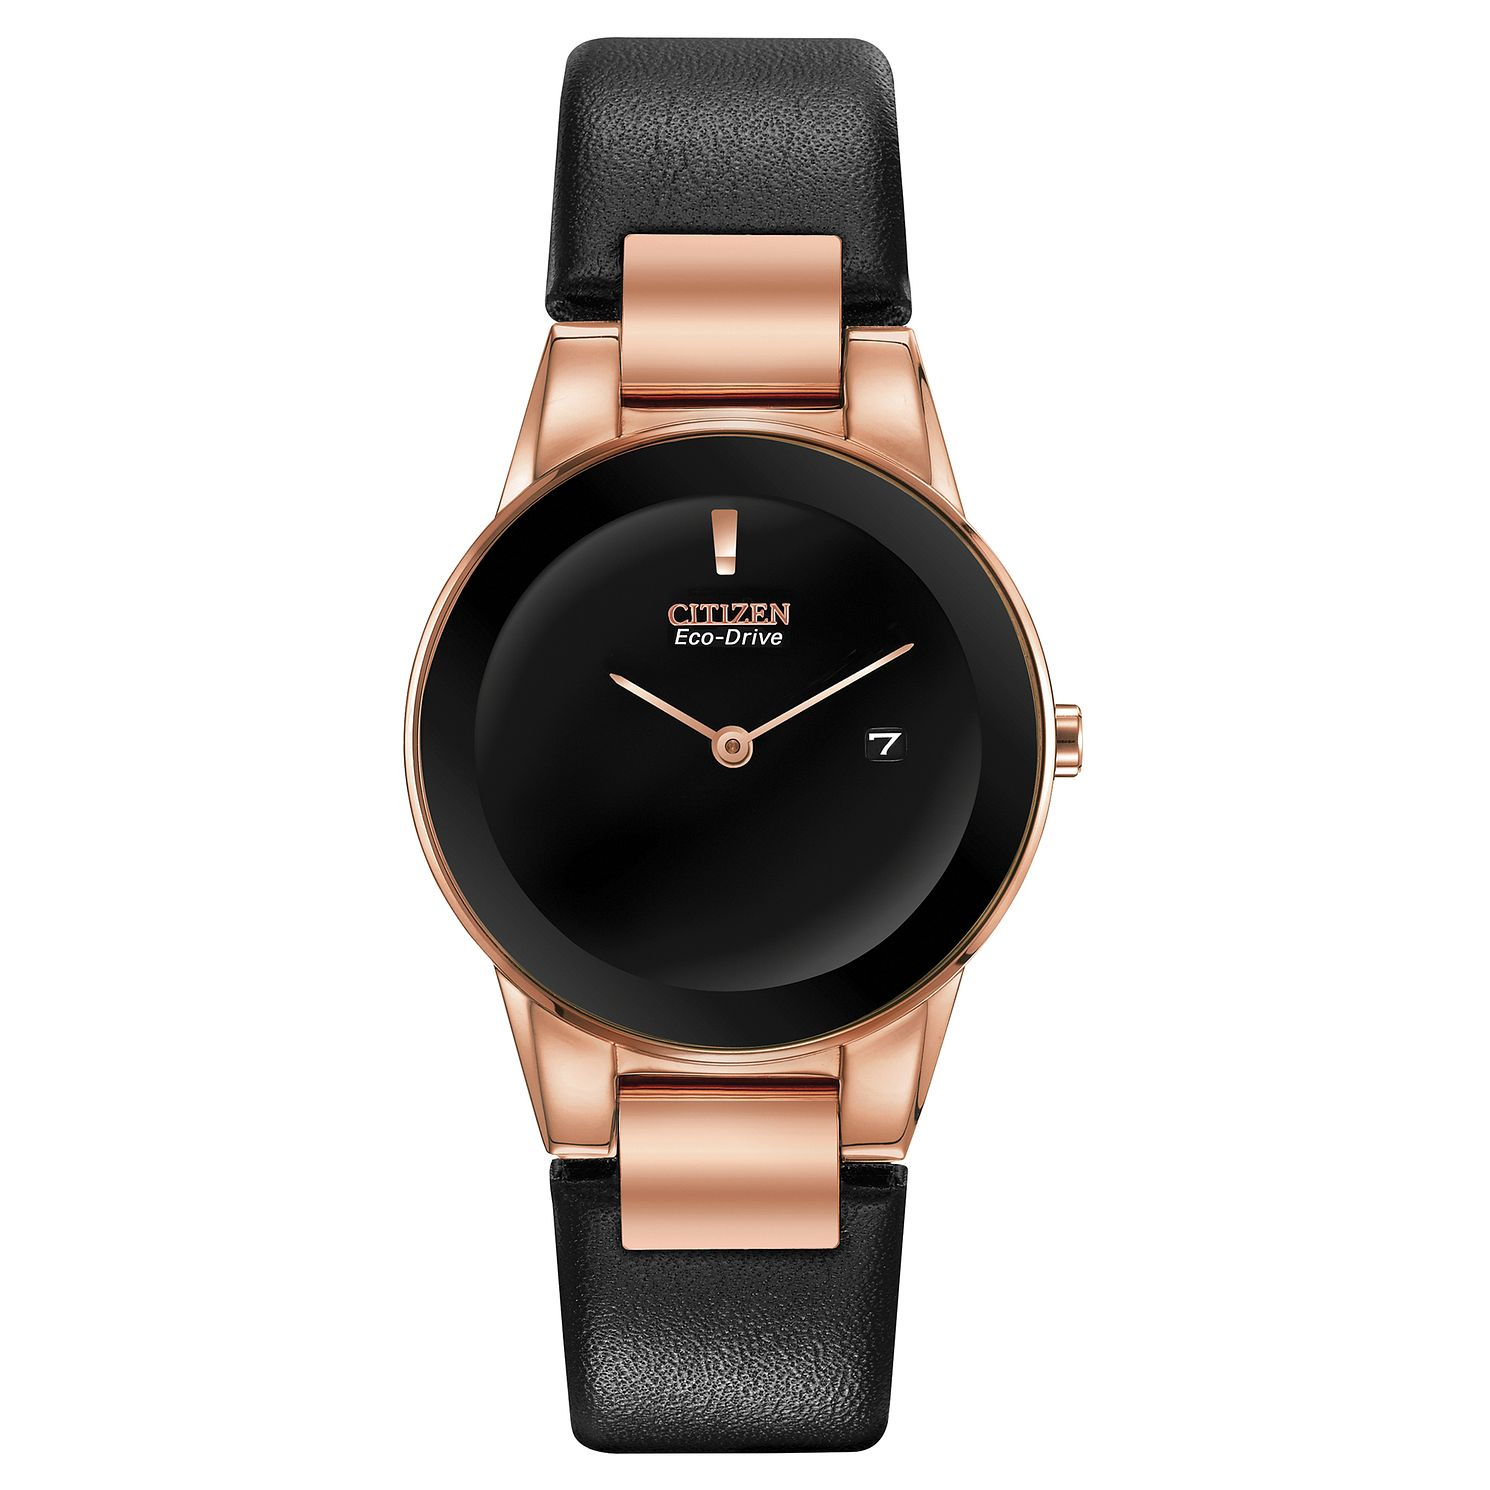 Citizen Eco-Drive Axiom Ladies' Black Leather Strap Watch - Product number 5235464